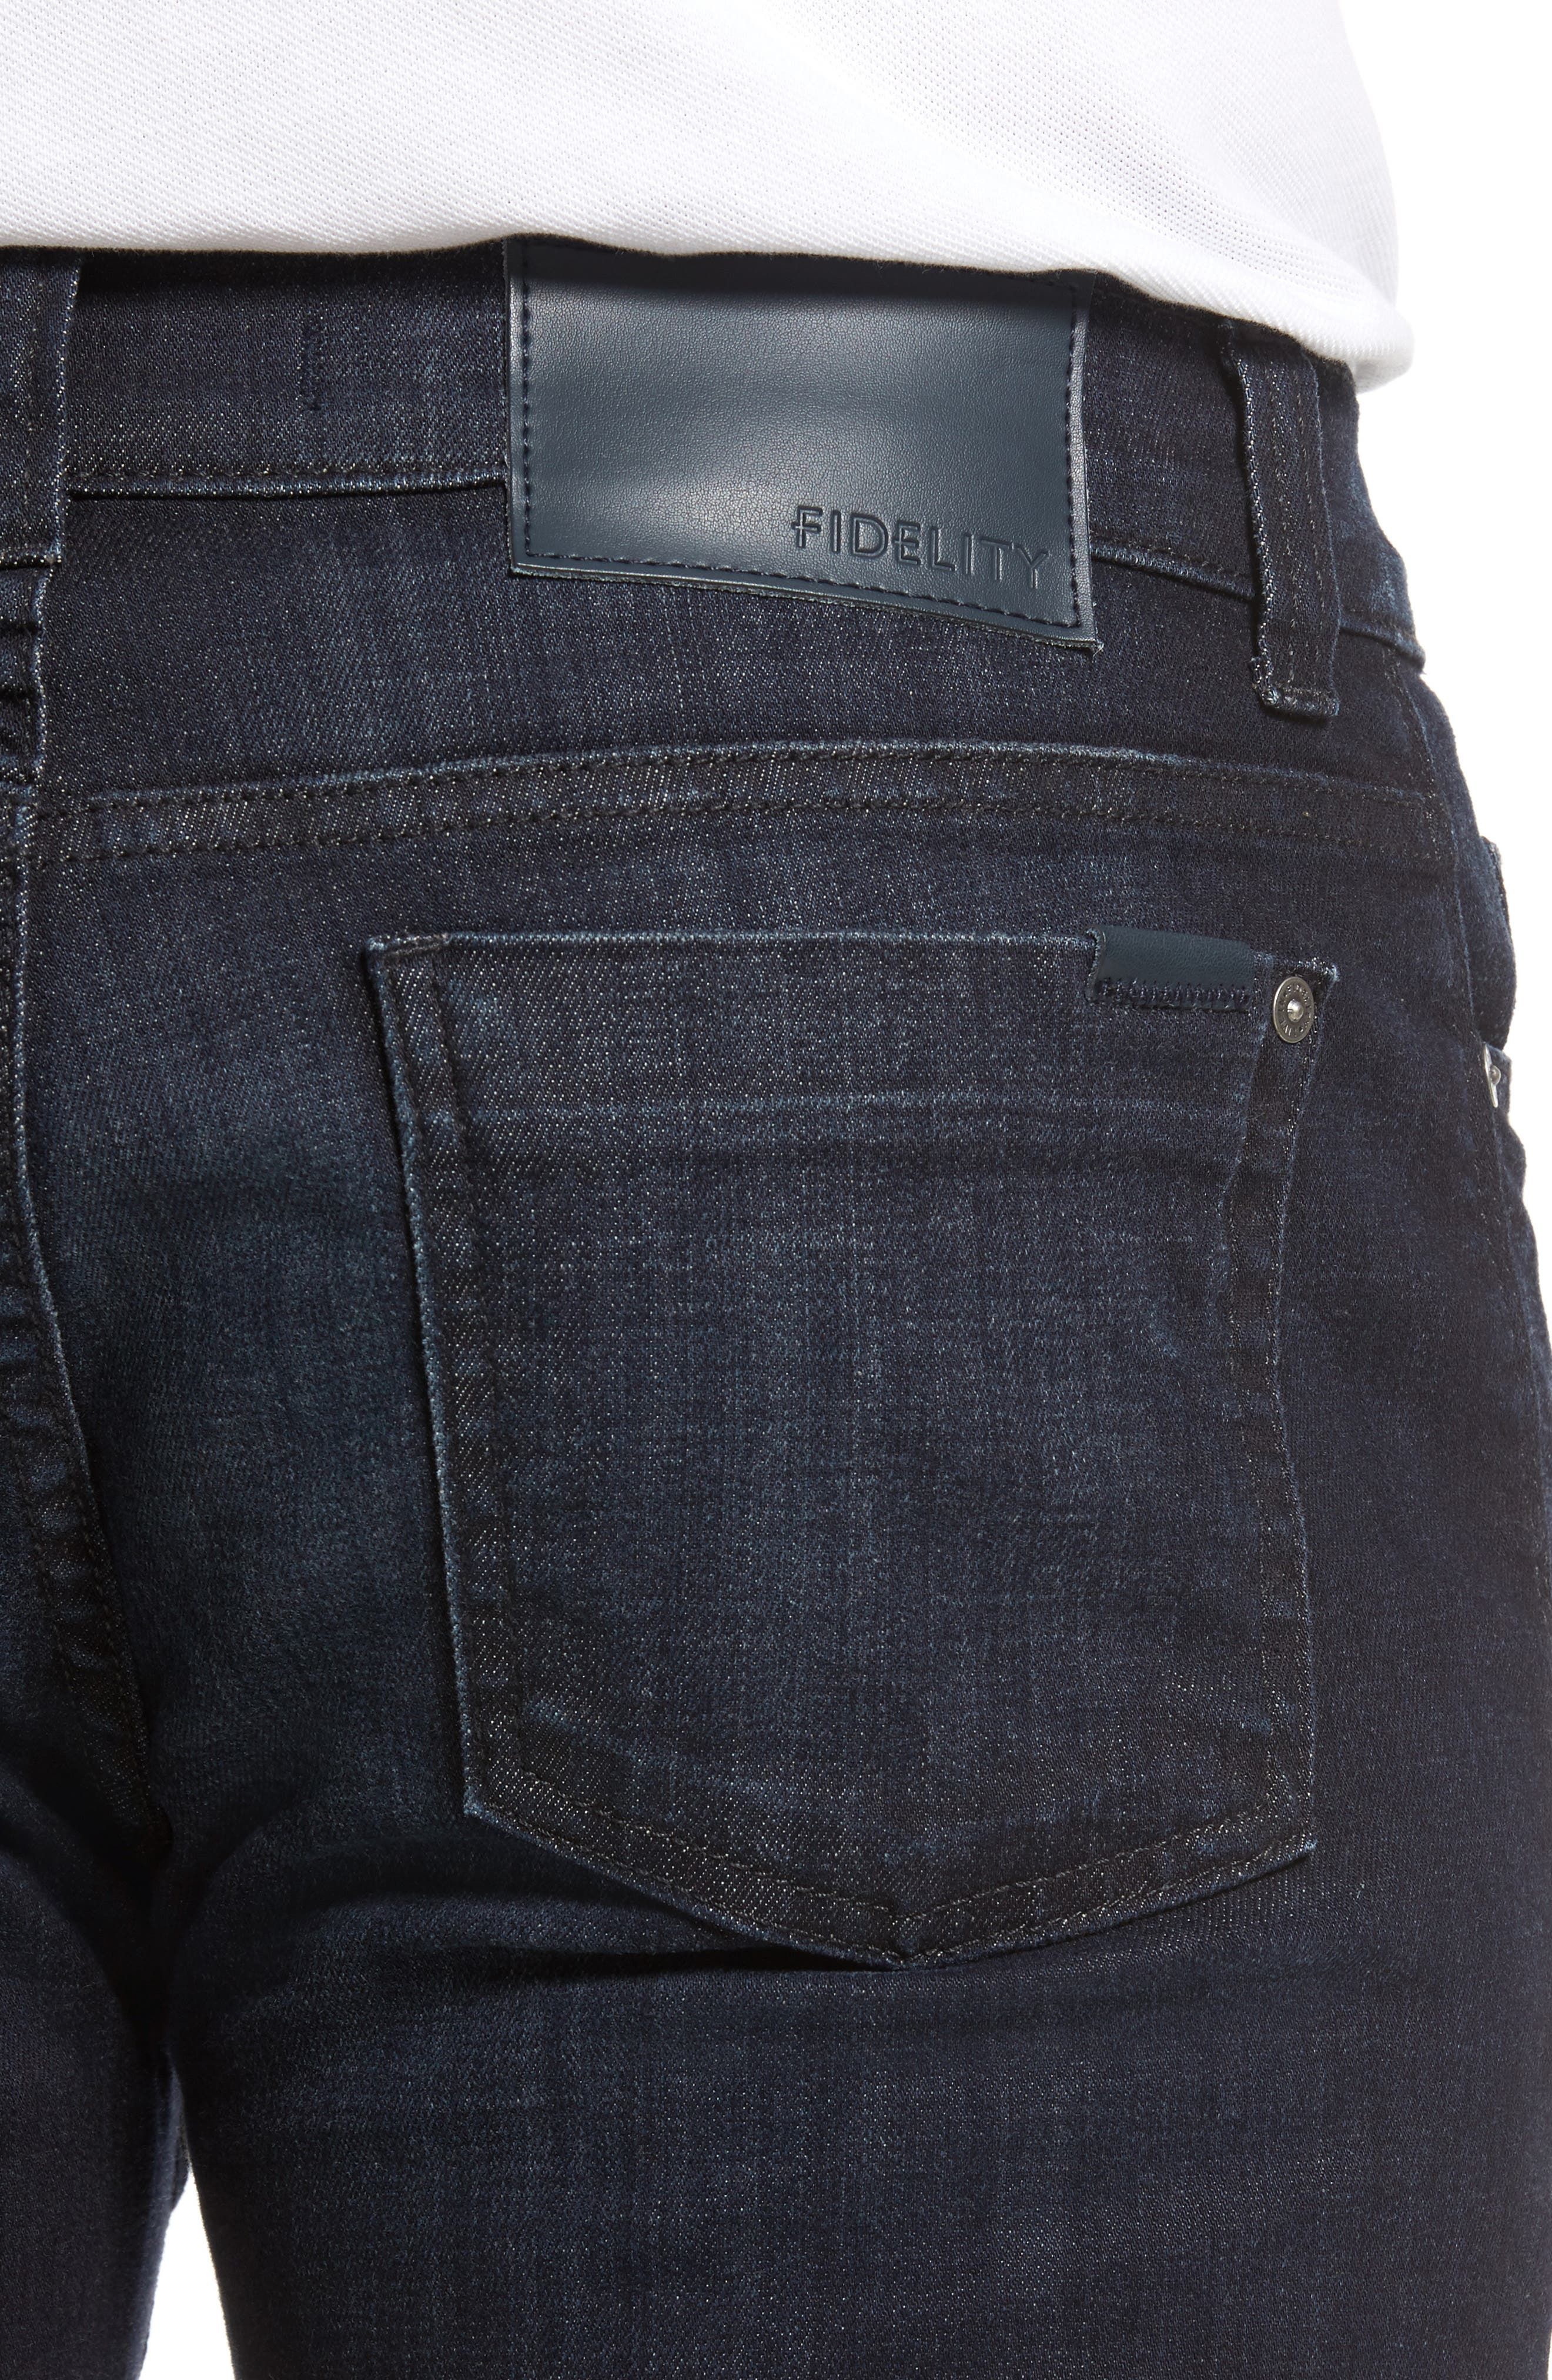 5011 Relaxed Fit Jeans,                             Alternate thumbnail 4, color,                             Harvard